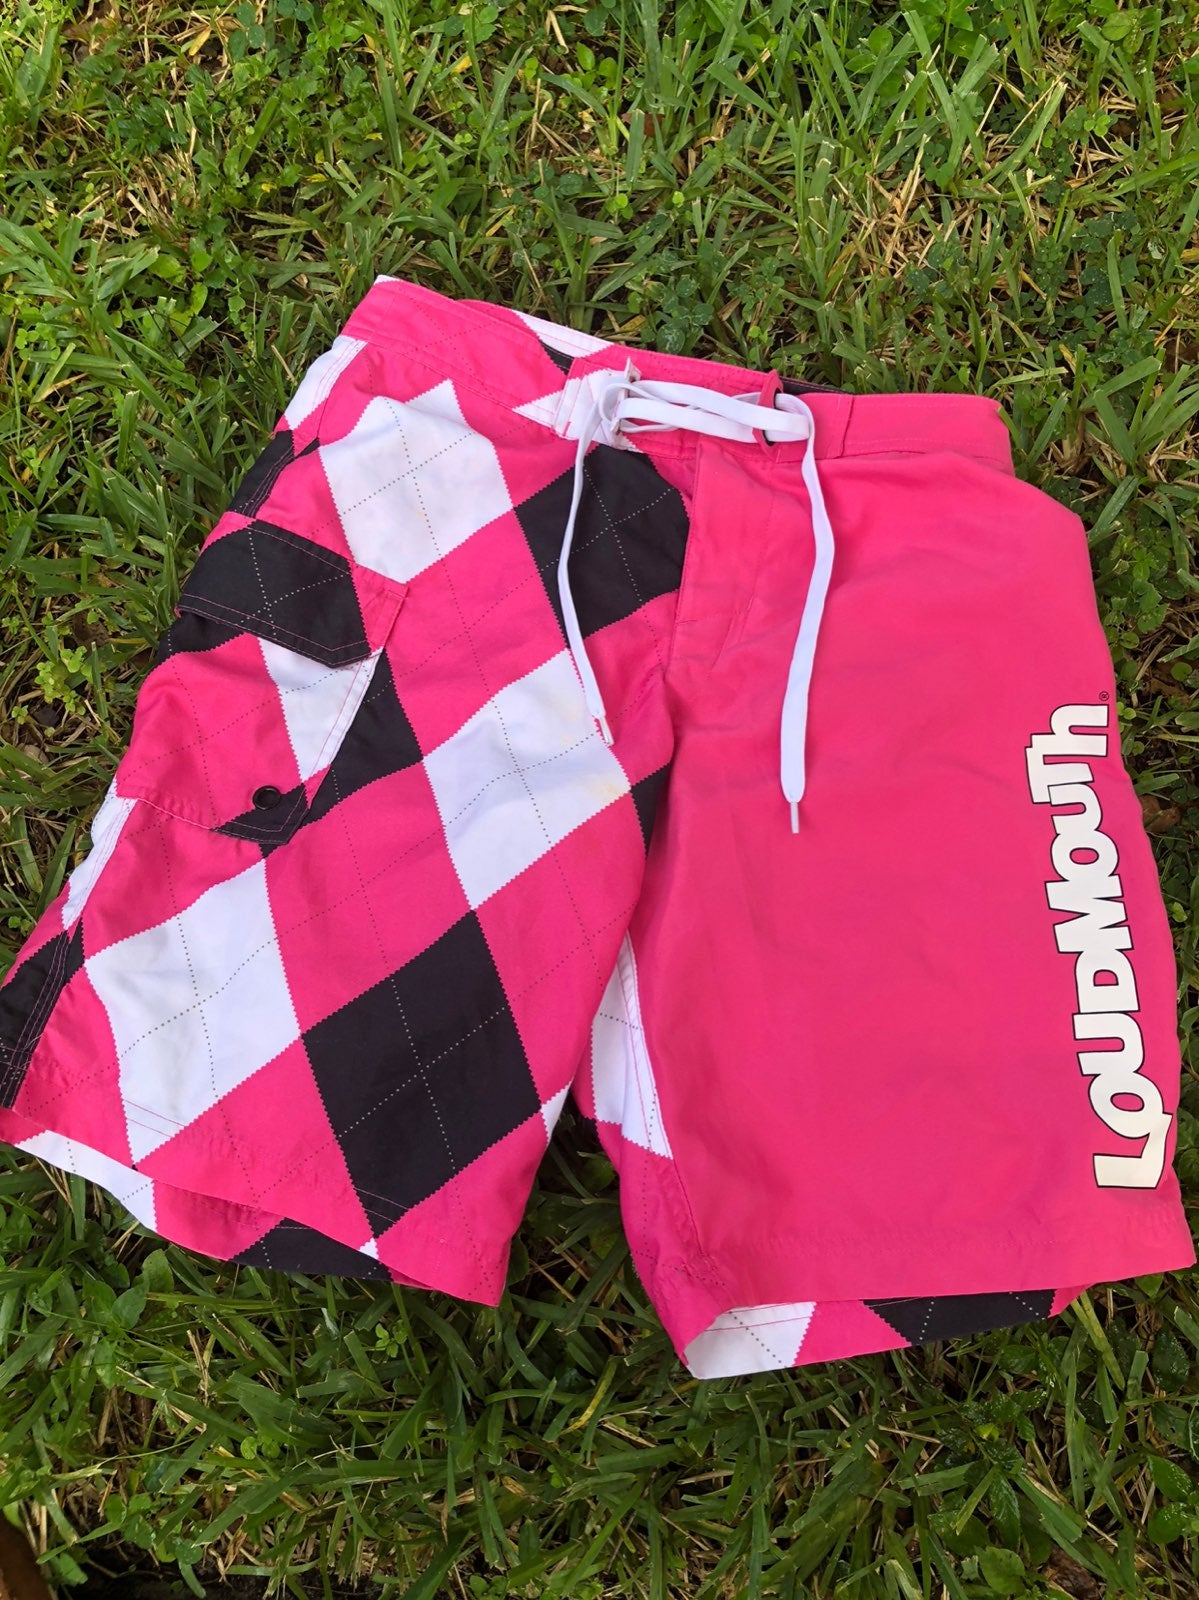 LOUDMOUTH :   Board shorts flamingo pink